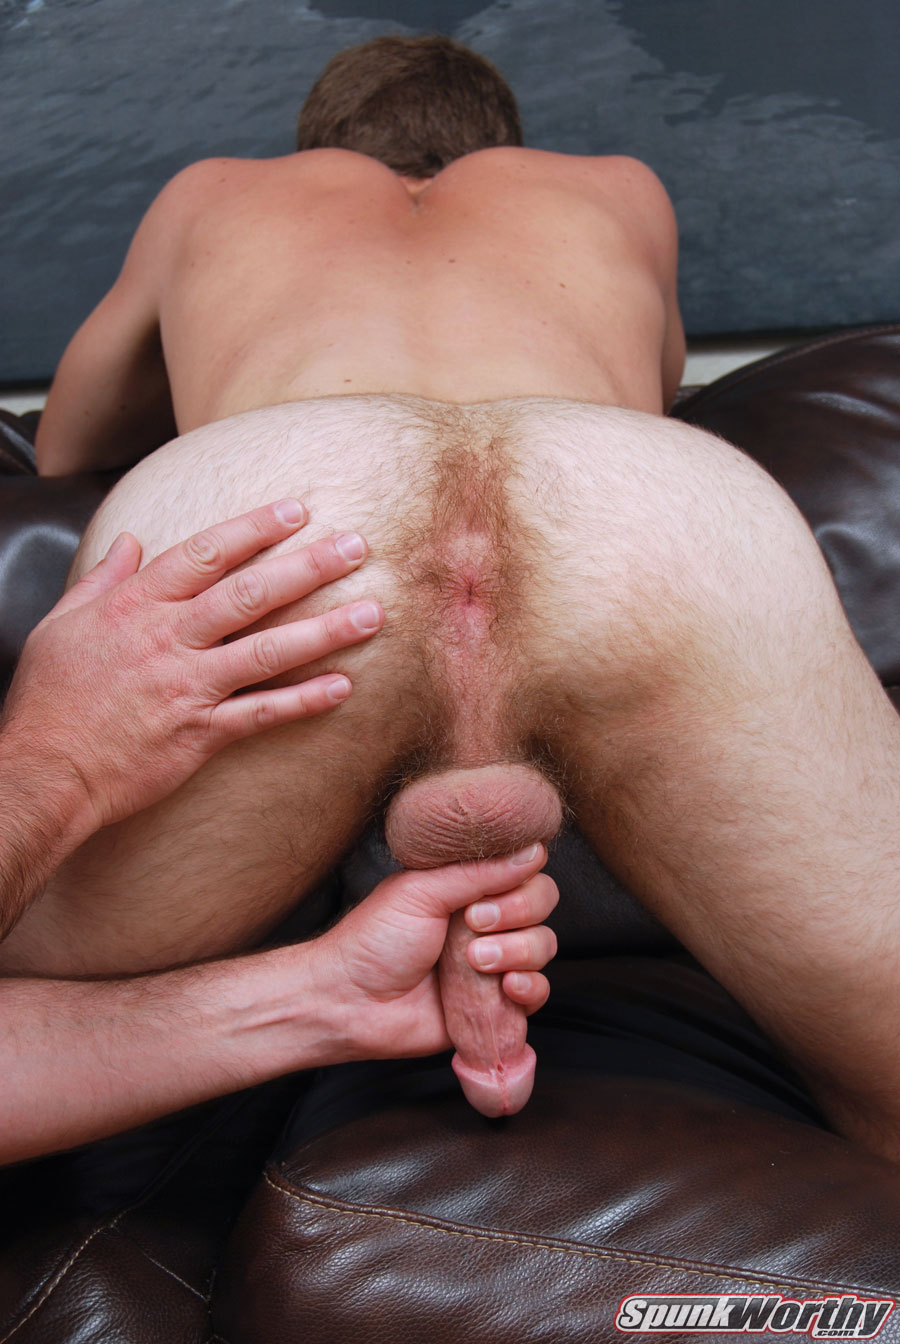 Spunkworthy-Wes-torrent-gay-straight-blowjob-06 Hairy Straight College Jock Gets His Cock Sucked By A Dude For The First Time